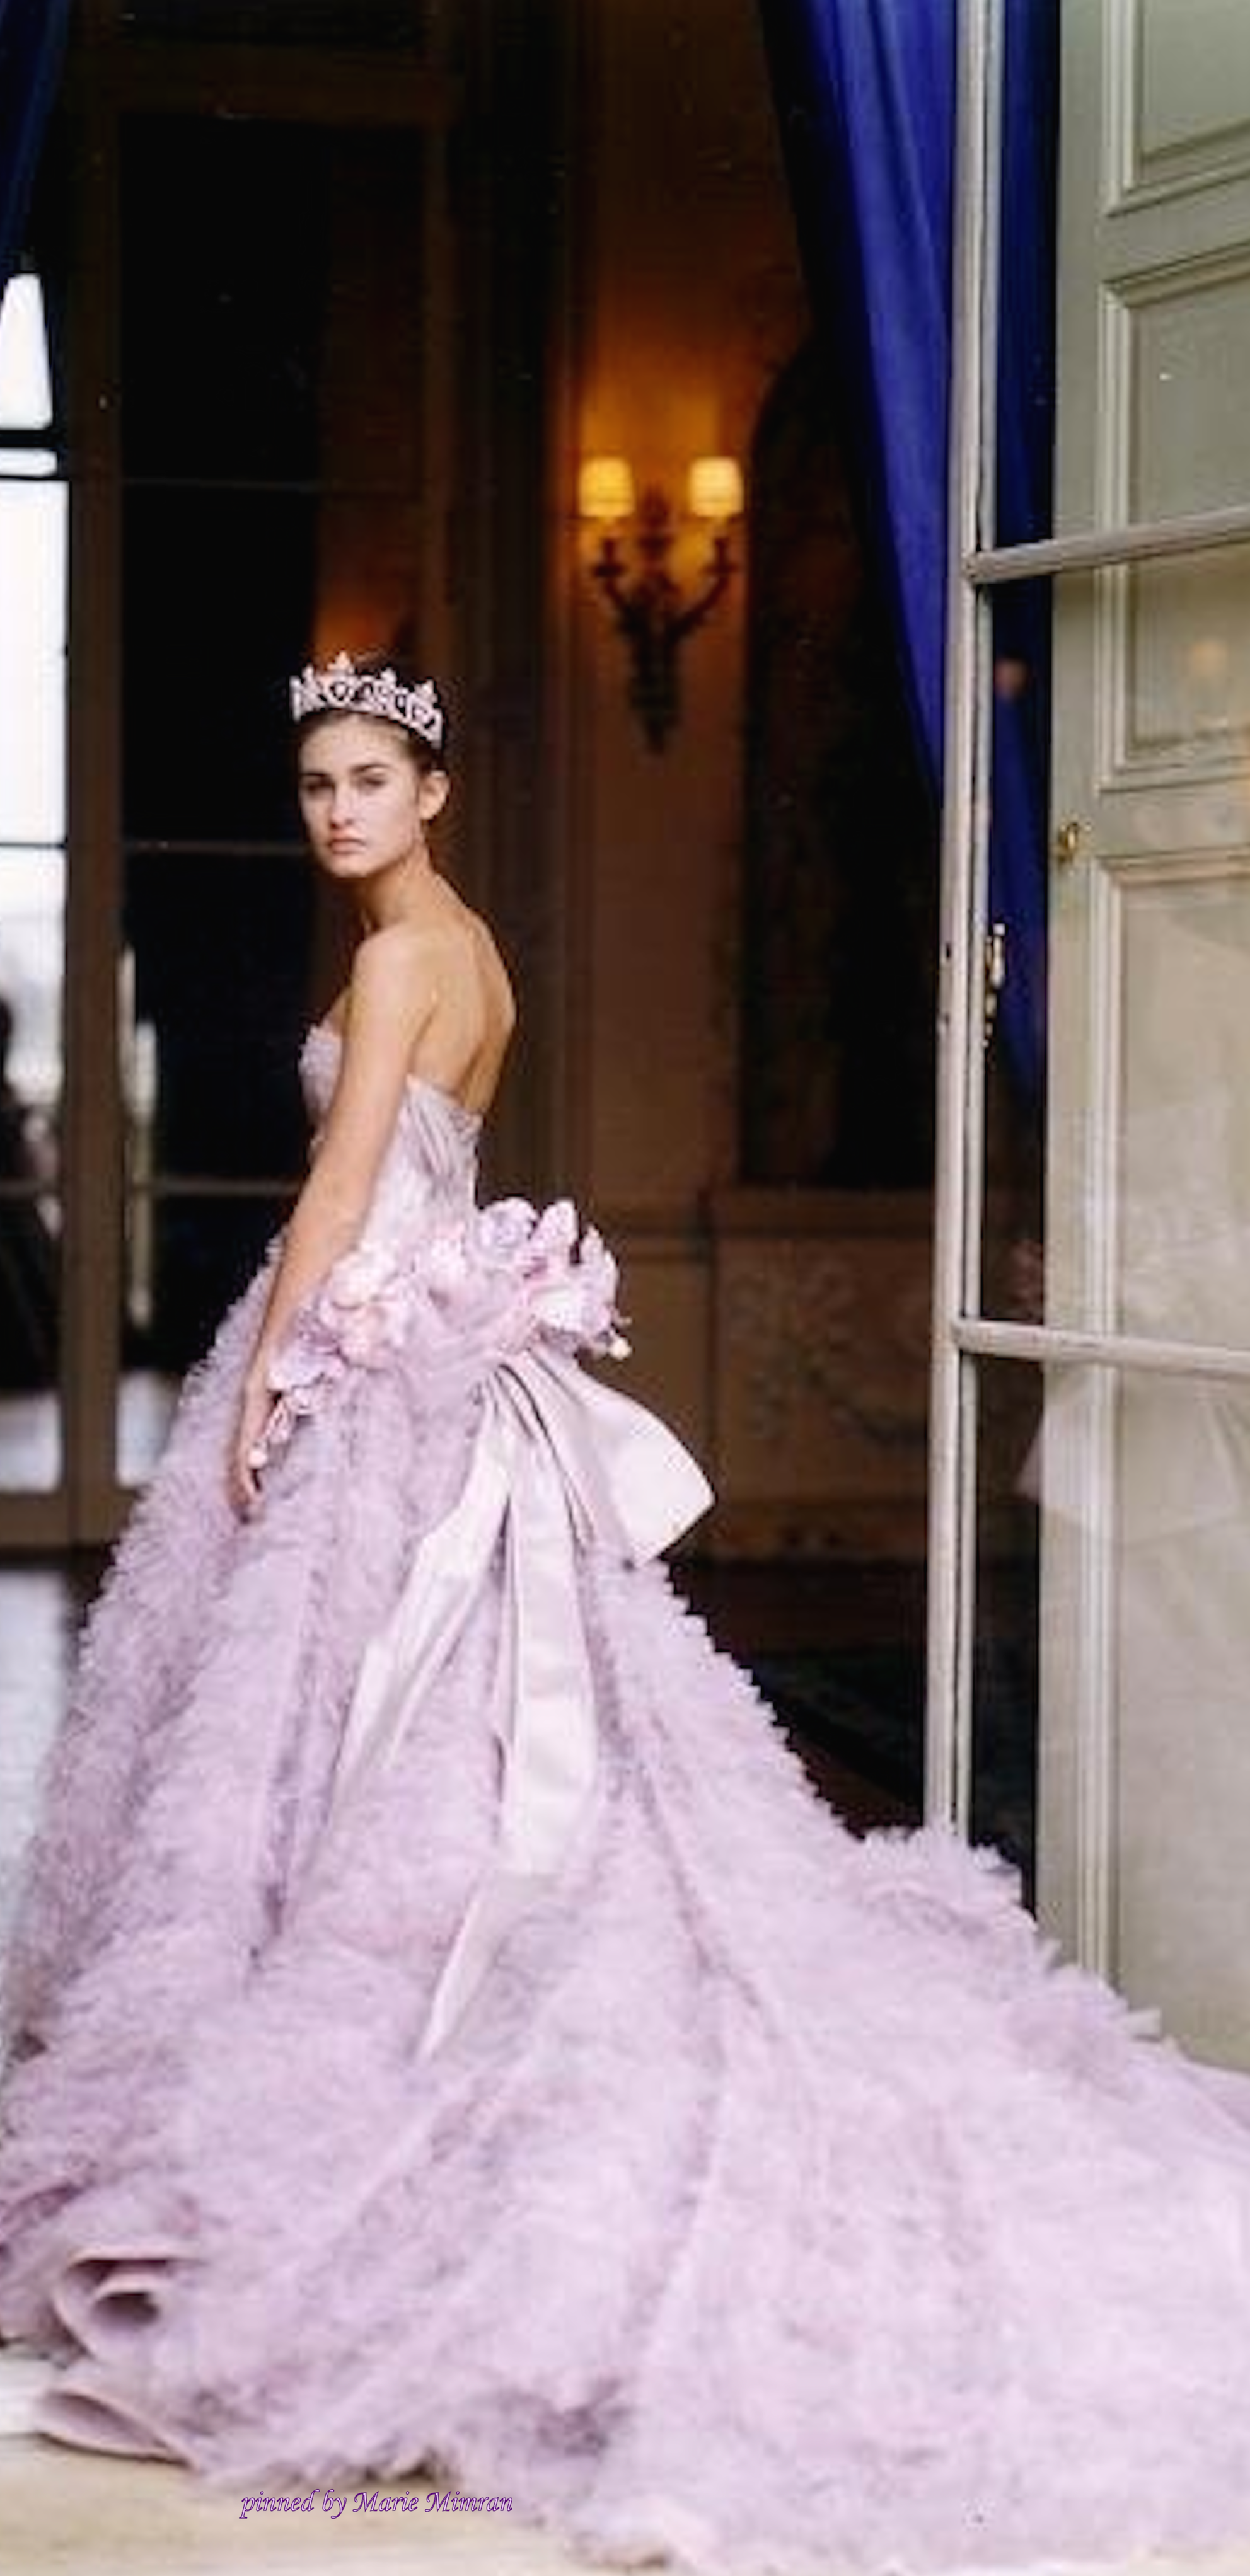 Lauren Bush in Dior Haute Couture at the Crillon Ball in paris ...